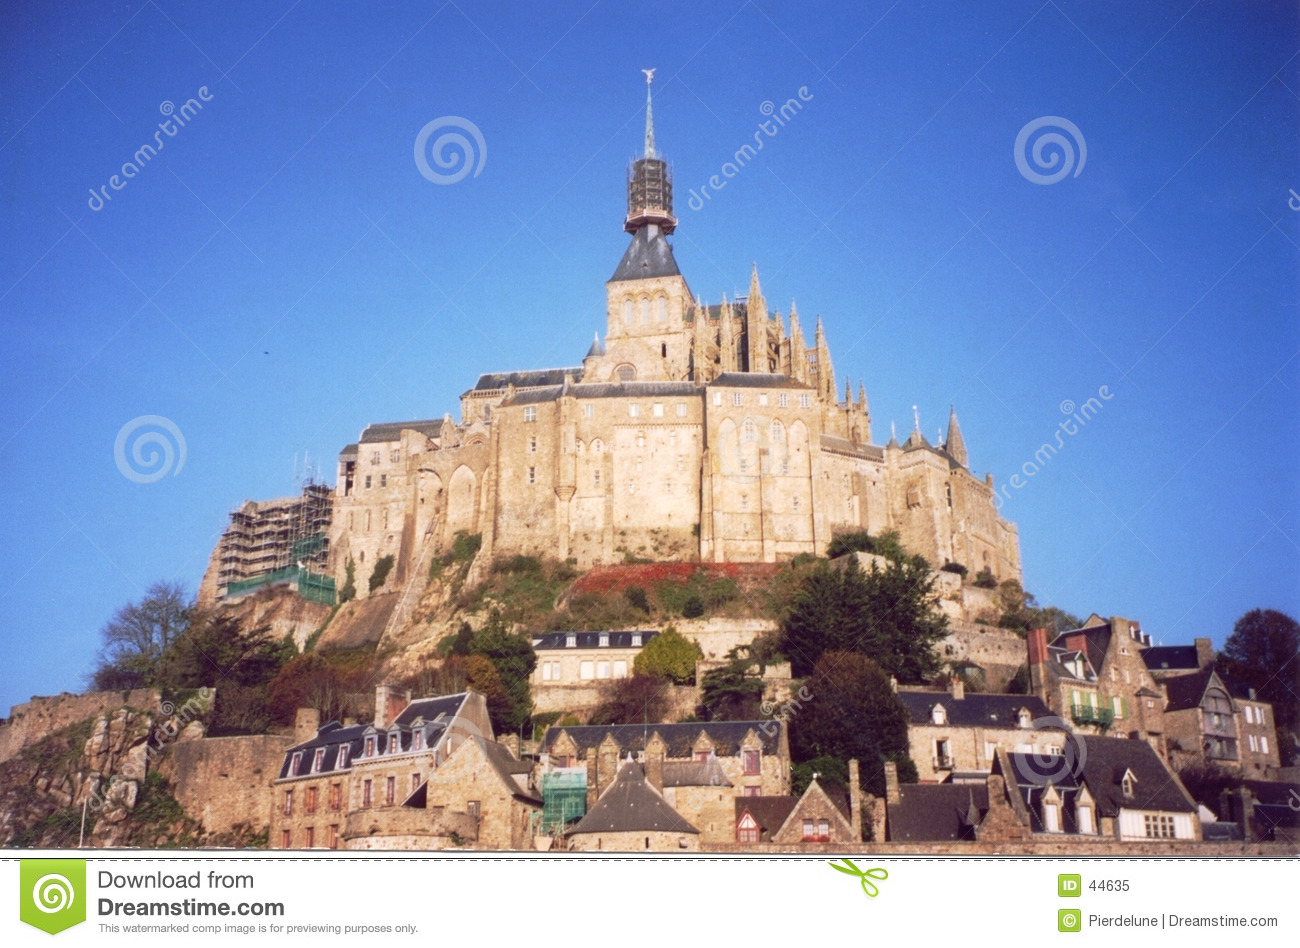 Saint Michel de Mont em Normandy, France